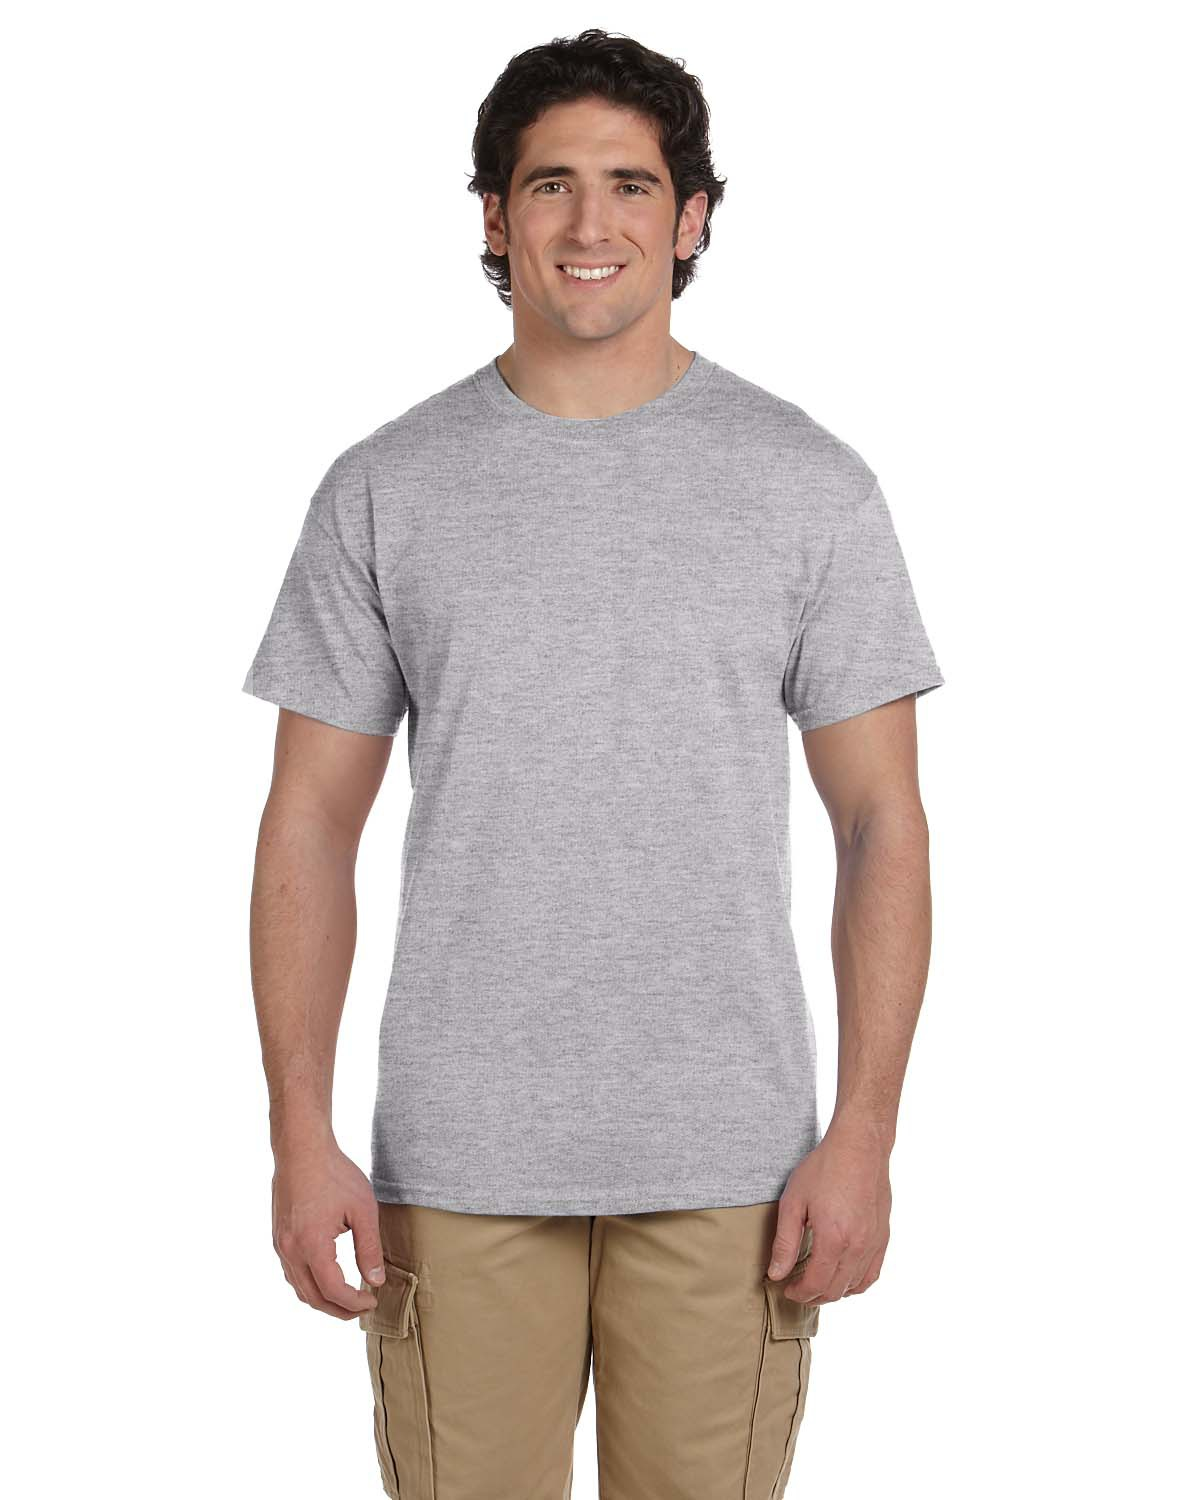 Gildan g200 - This is the most affordable t-shirt for fund raising, promotional events & giveaways. They have a classic fit, and are made of 100% cotton. They wash well and hold up great. Don't think because they are the cheapest option that they aren't nice, this has been our best seller for years. Check out the over 60 colors available, and get a price quote here.